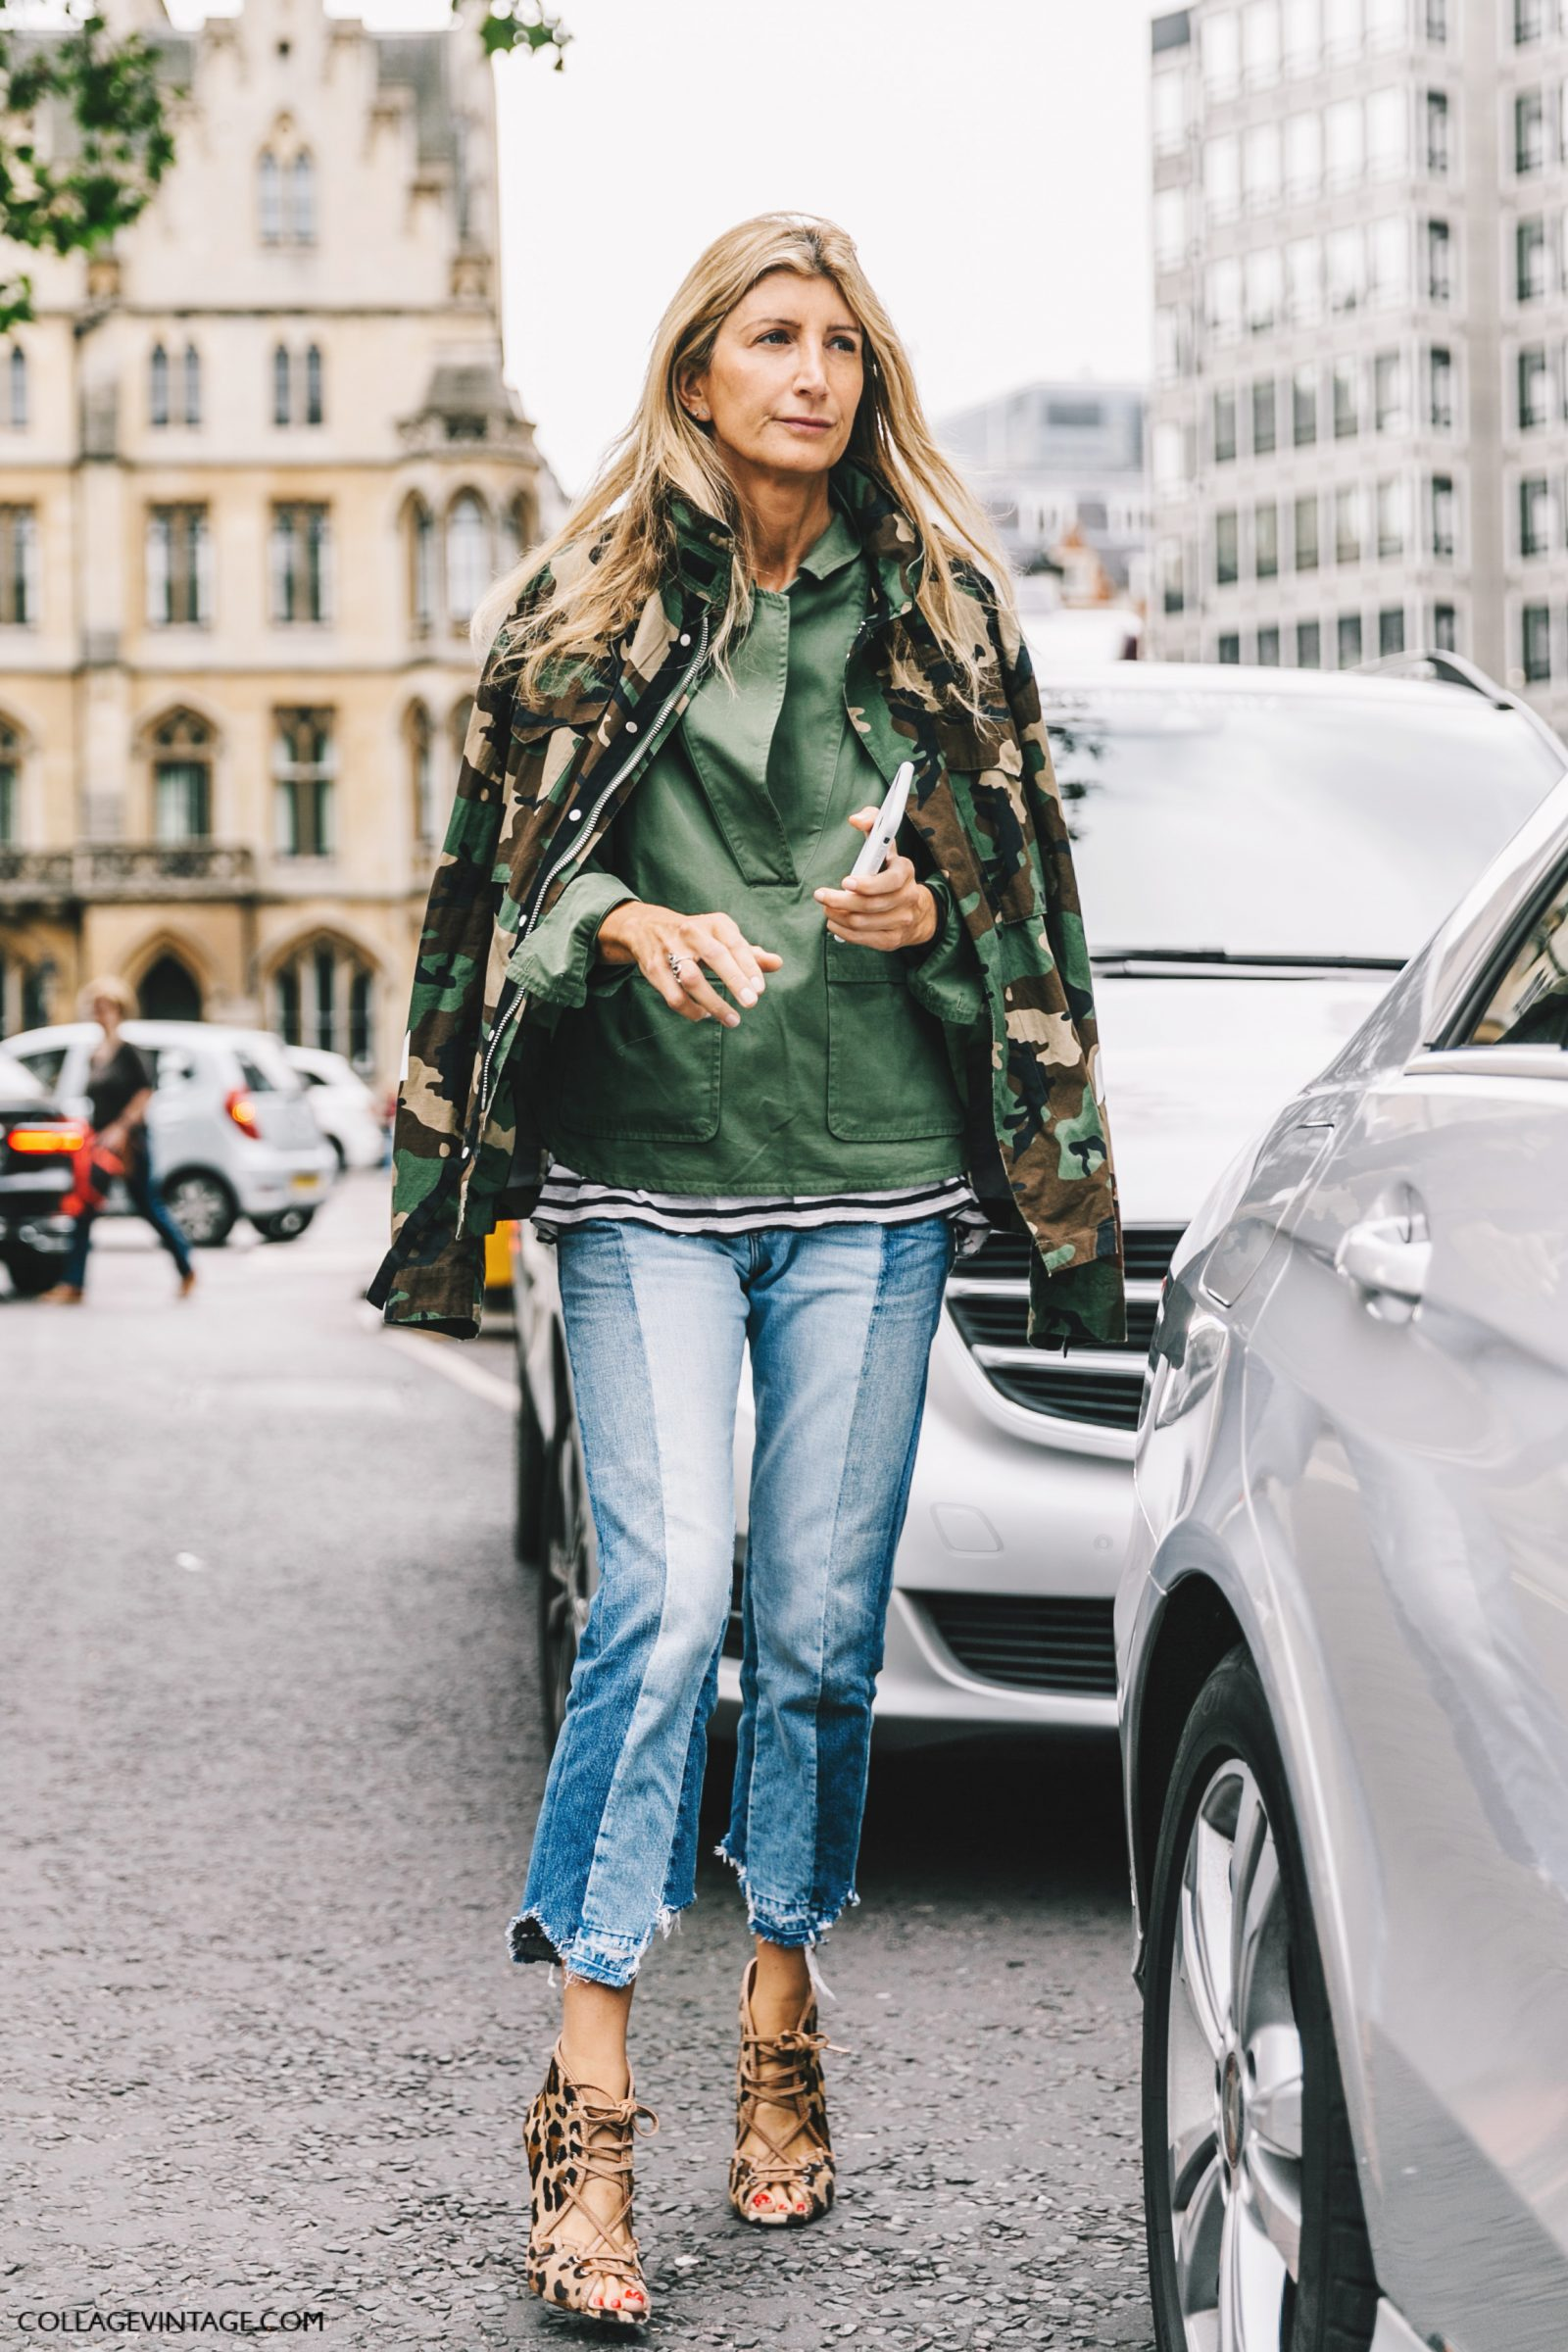 lfw-london_fashion_week_ss17-street_style-outfits-collage_vintage-vintage-topshop_unique-anya-mulberry-preen-88